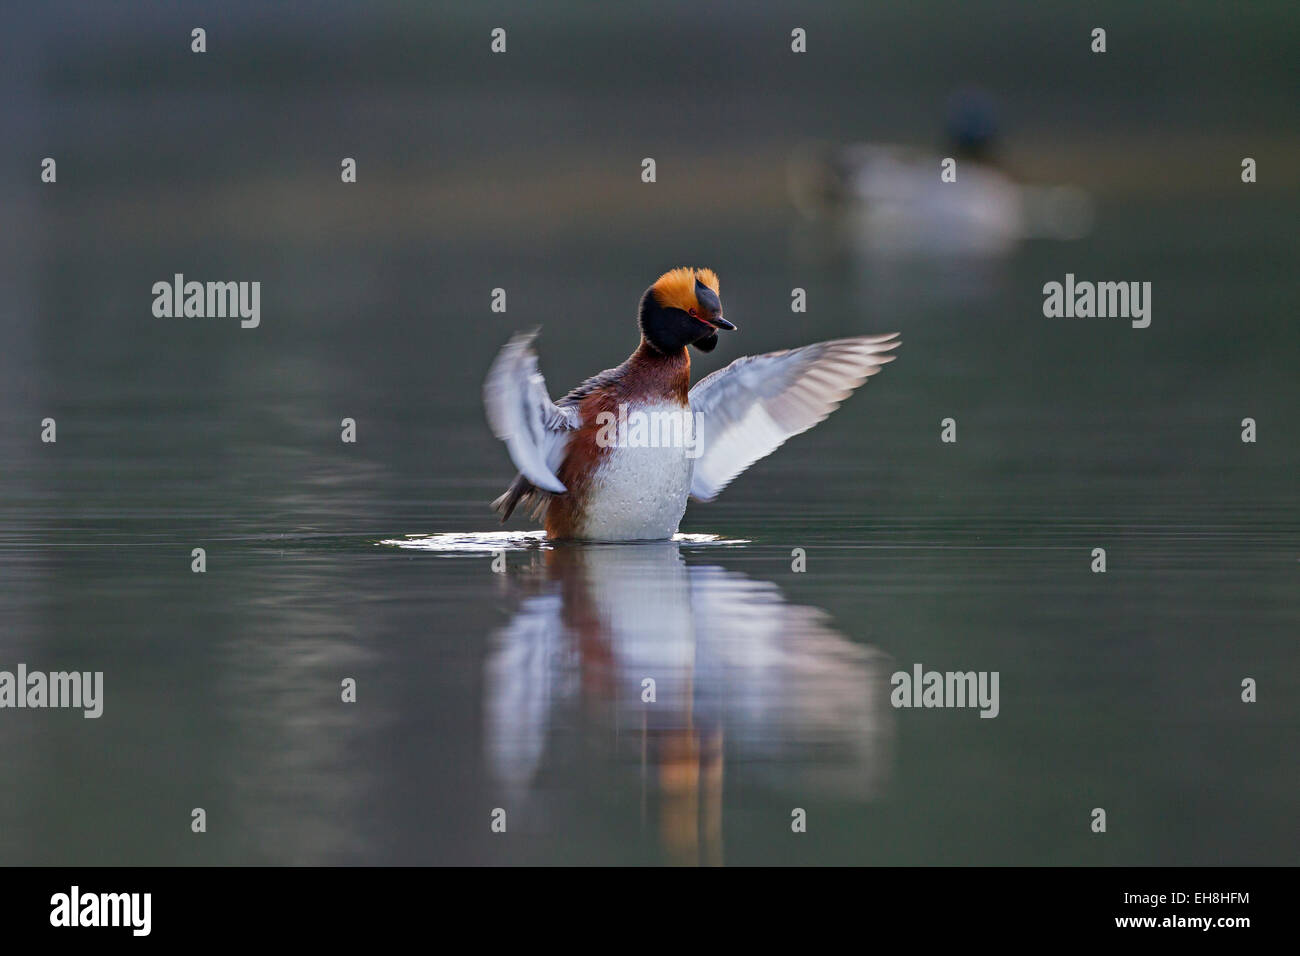 Horned grebe (Podiceps auritus) in breeding plumage flapping wings on lake - Stock Image